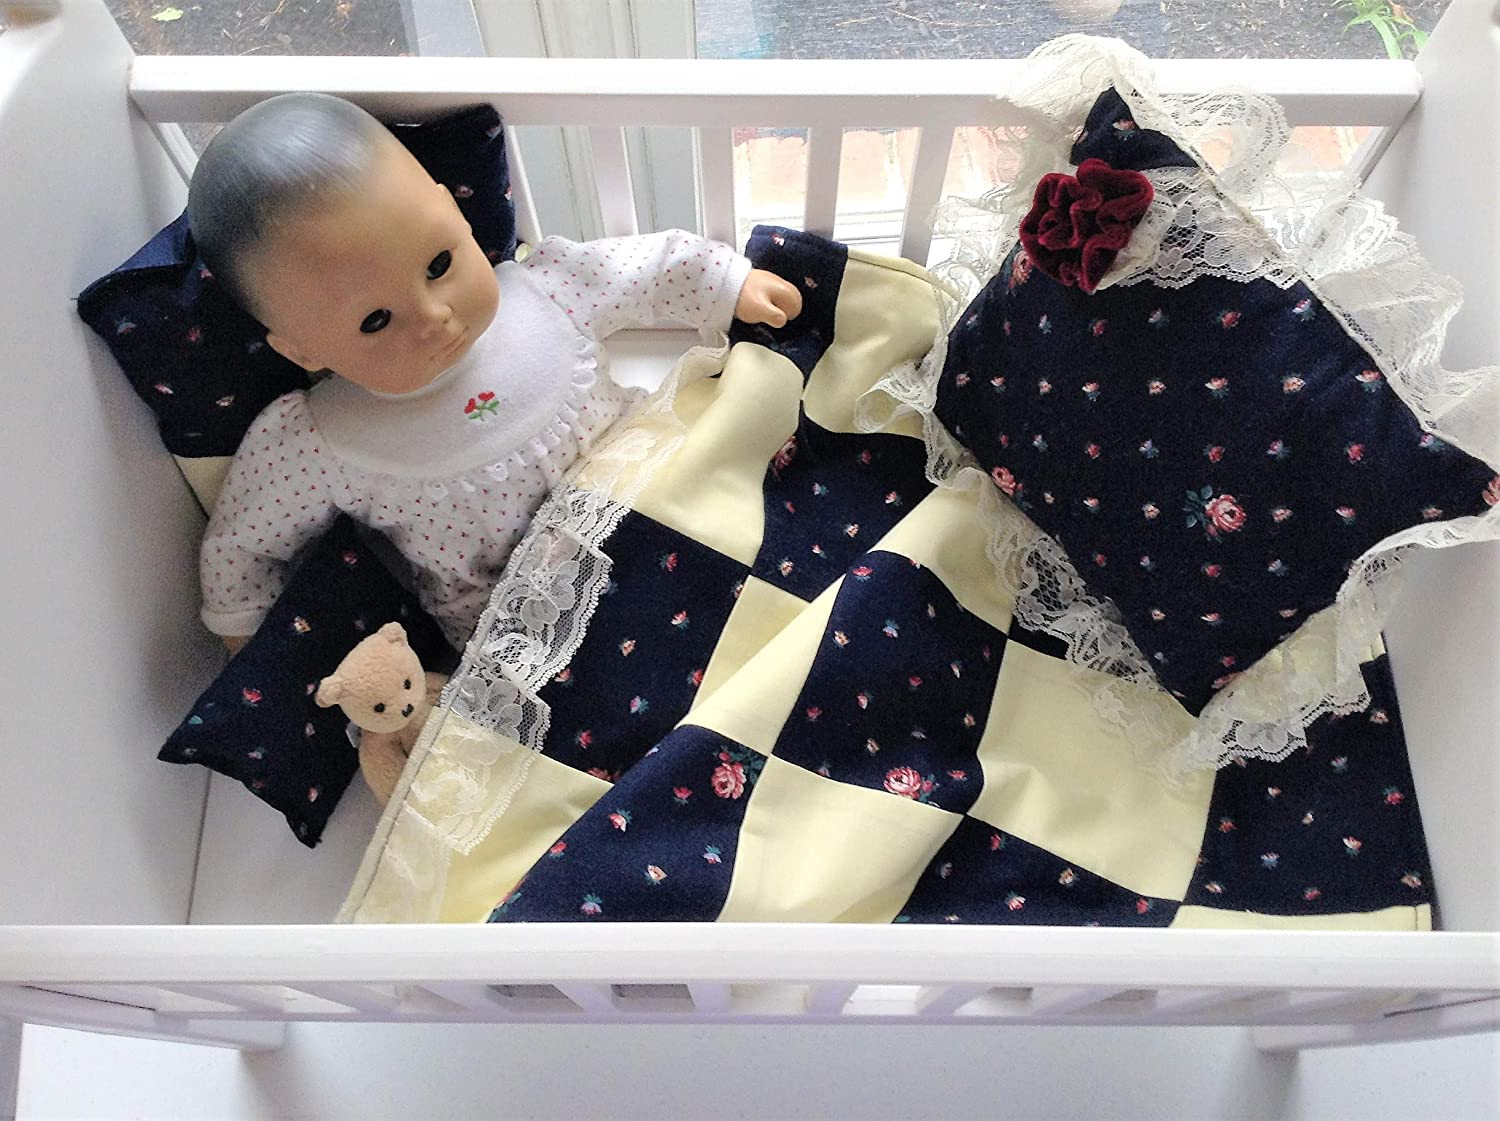 Bitty Baby Crib American Girl Blue Yellow Handmade Patchwork Block Style Quilt Patchwork Quilted Blanket Doll Bedding Set With 3 Pillows